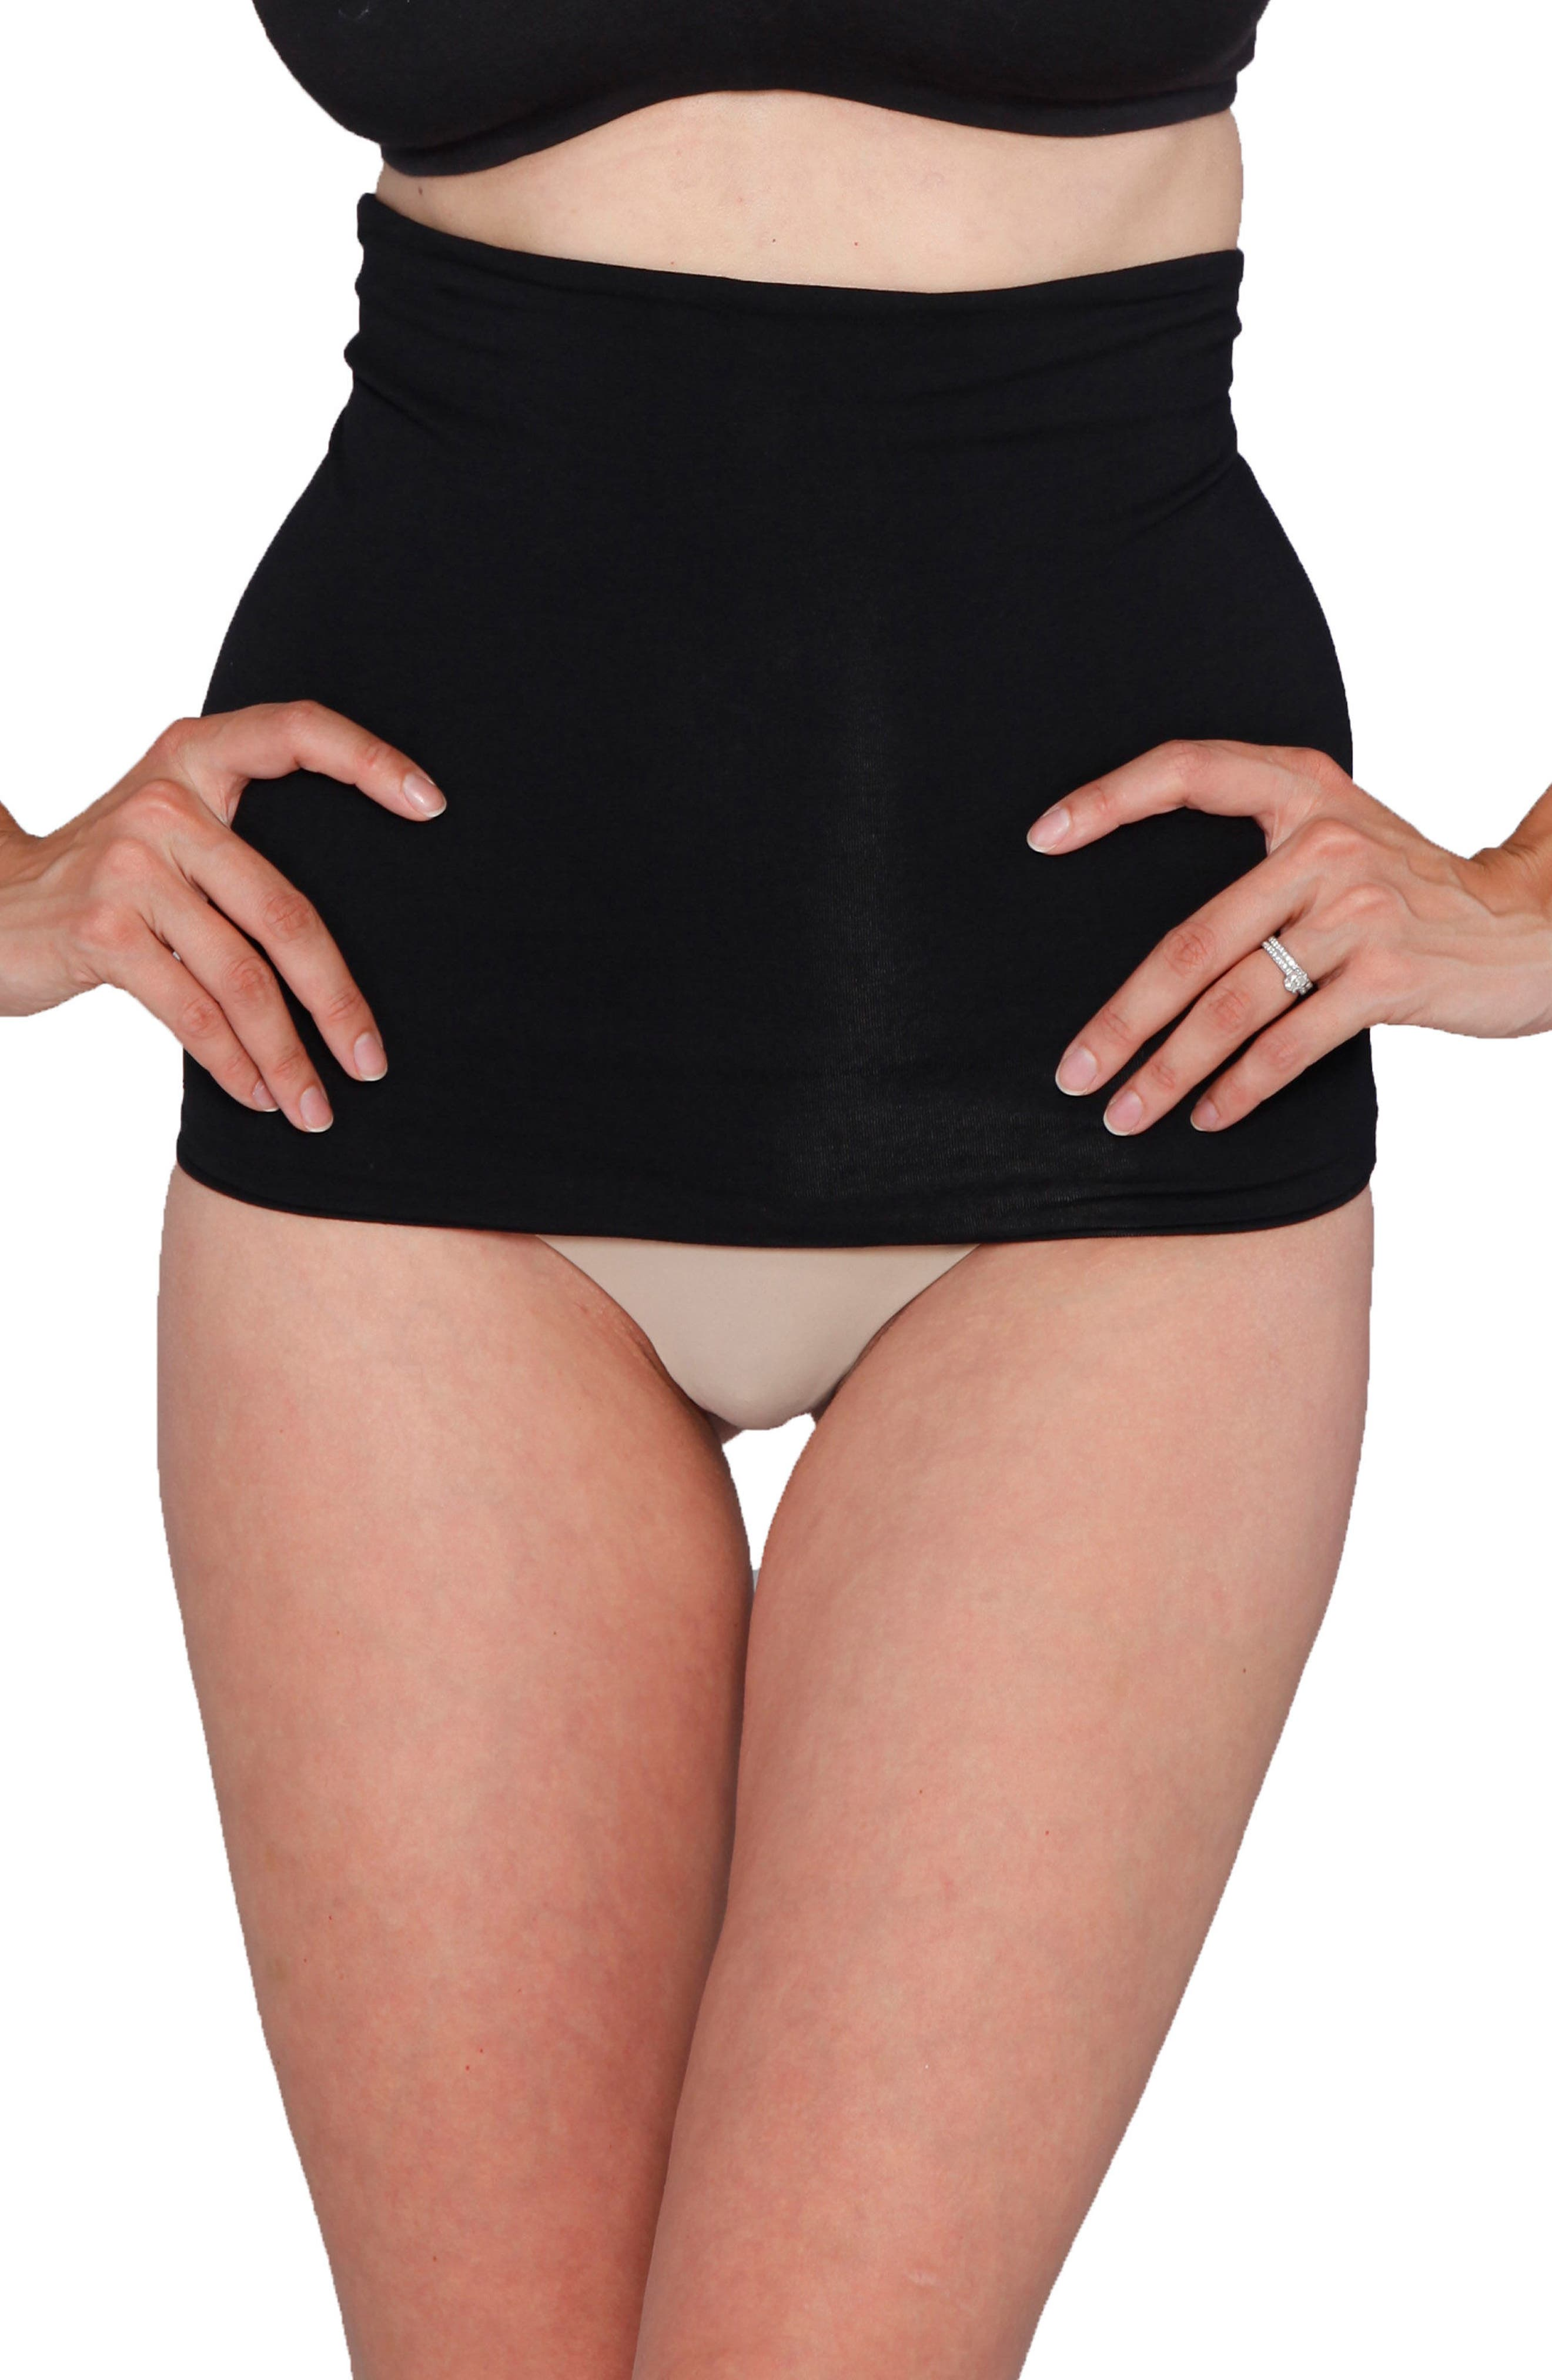 Main Image - Angel Maternity Tummy Tight Control Belly Band Postpartum Shapewear